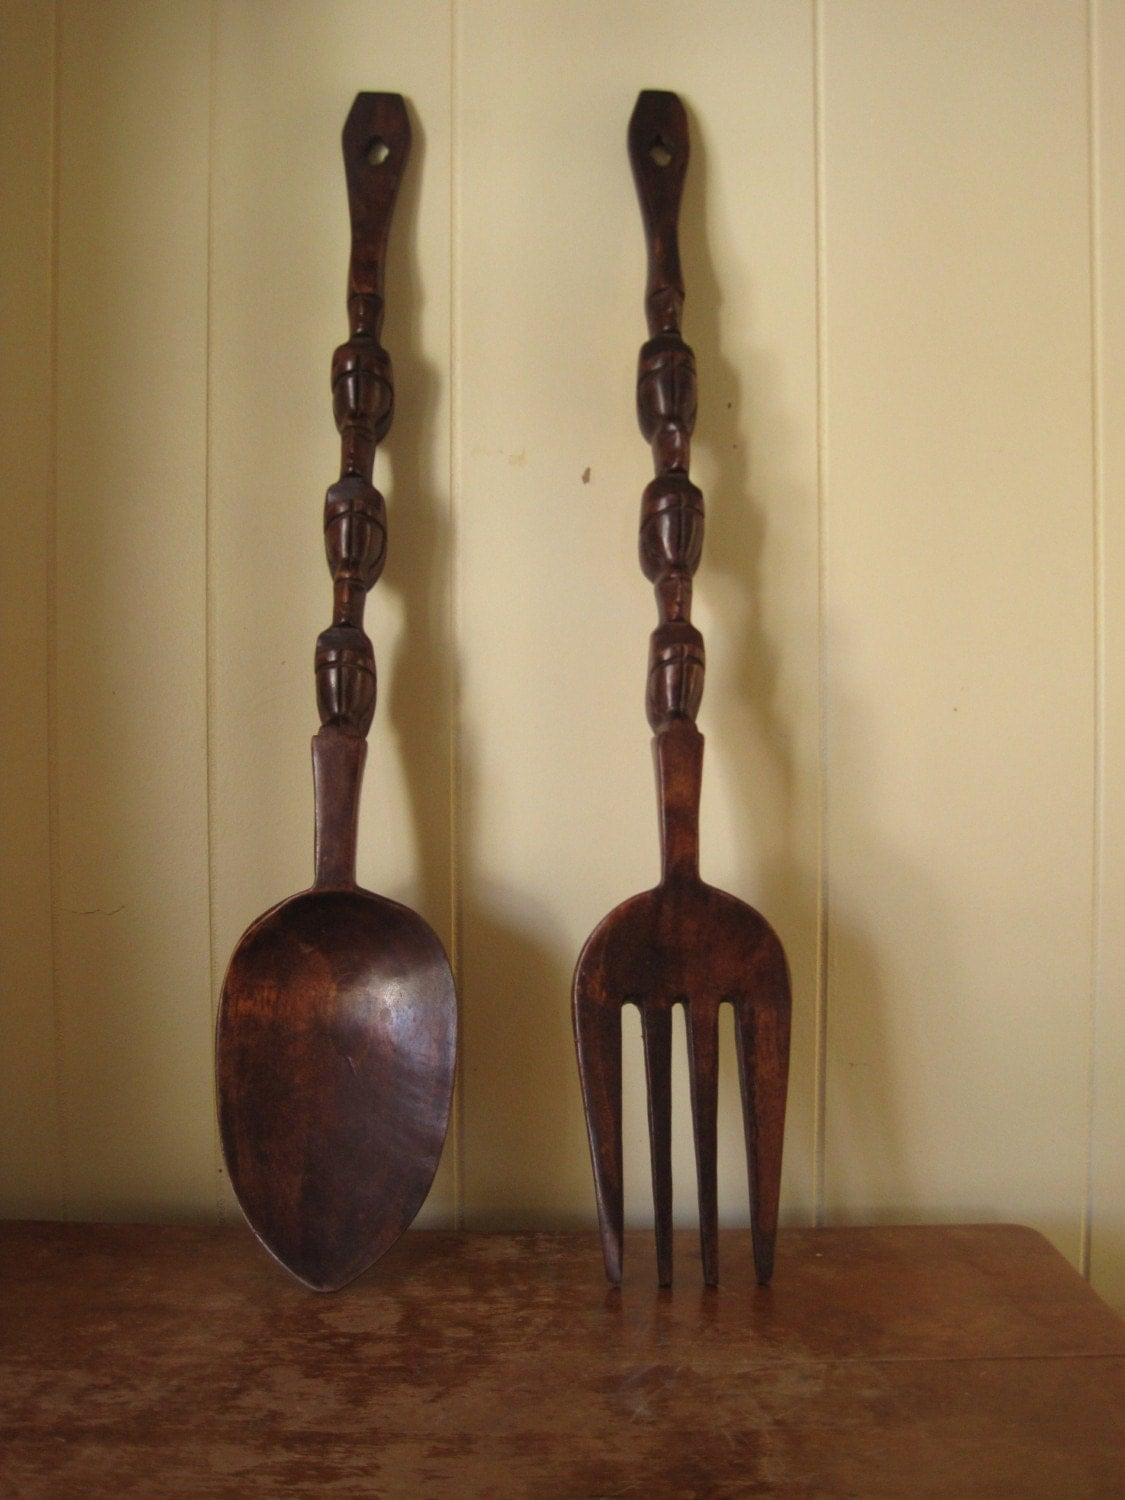 the big kitschy fork and spoon vintage wall decor. Black Bedroom Furniture Sets. Home Design Ideas